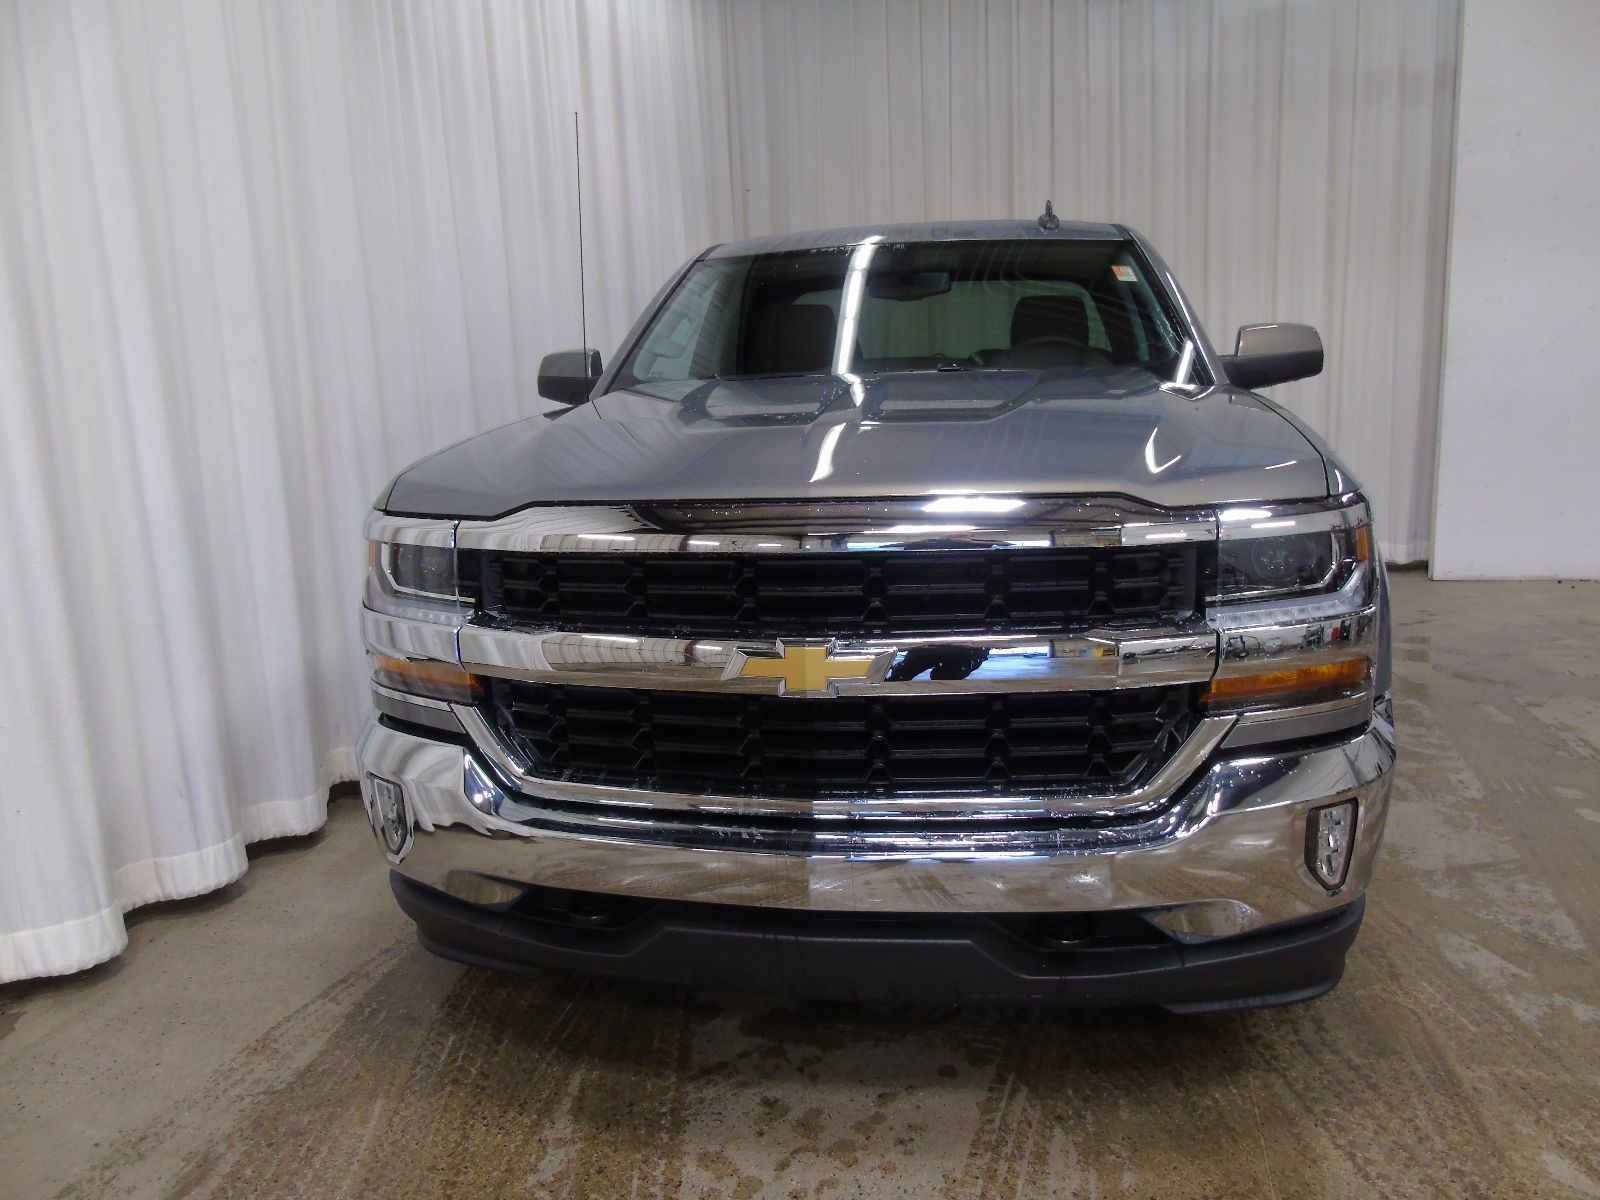 new 2017 chevrolet silverado 1500 lt 5 3l 8 cyl automatic 4x4 extended cab in middleton gd17081. Black Bedroom Furniture Sets. Home Design Ideas